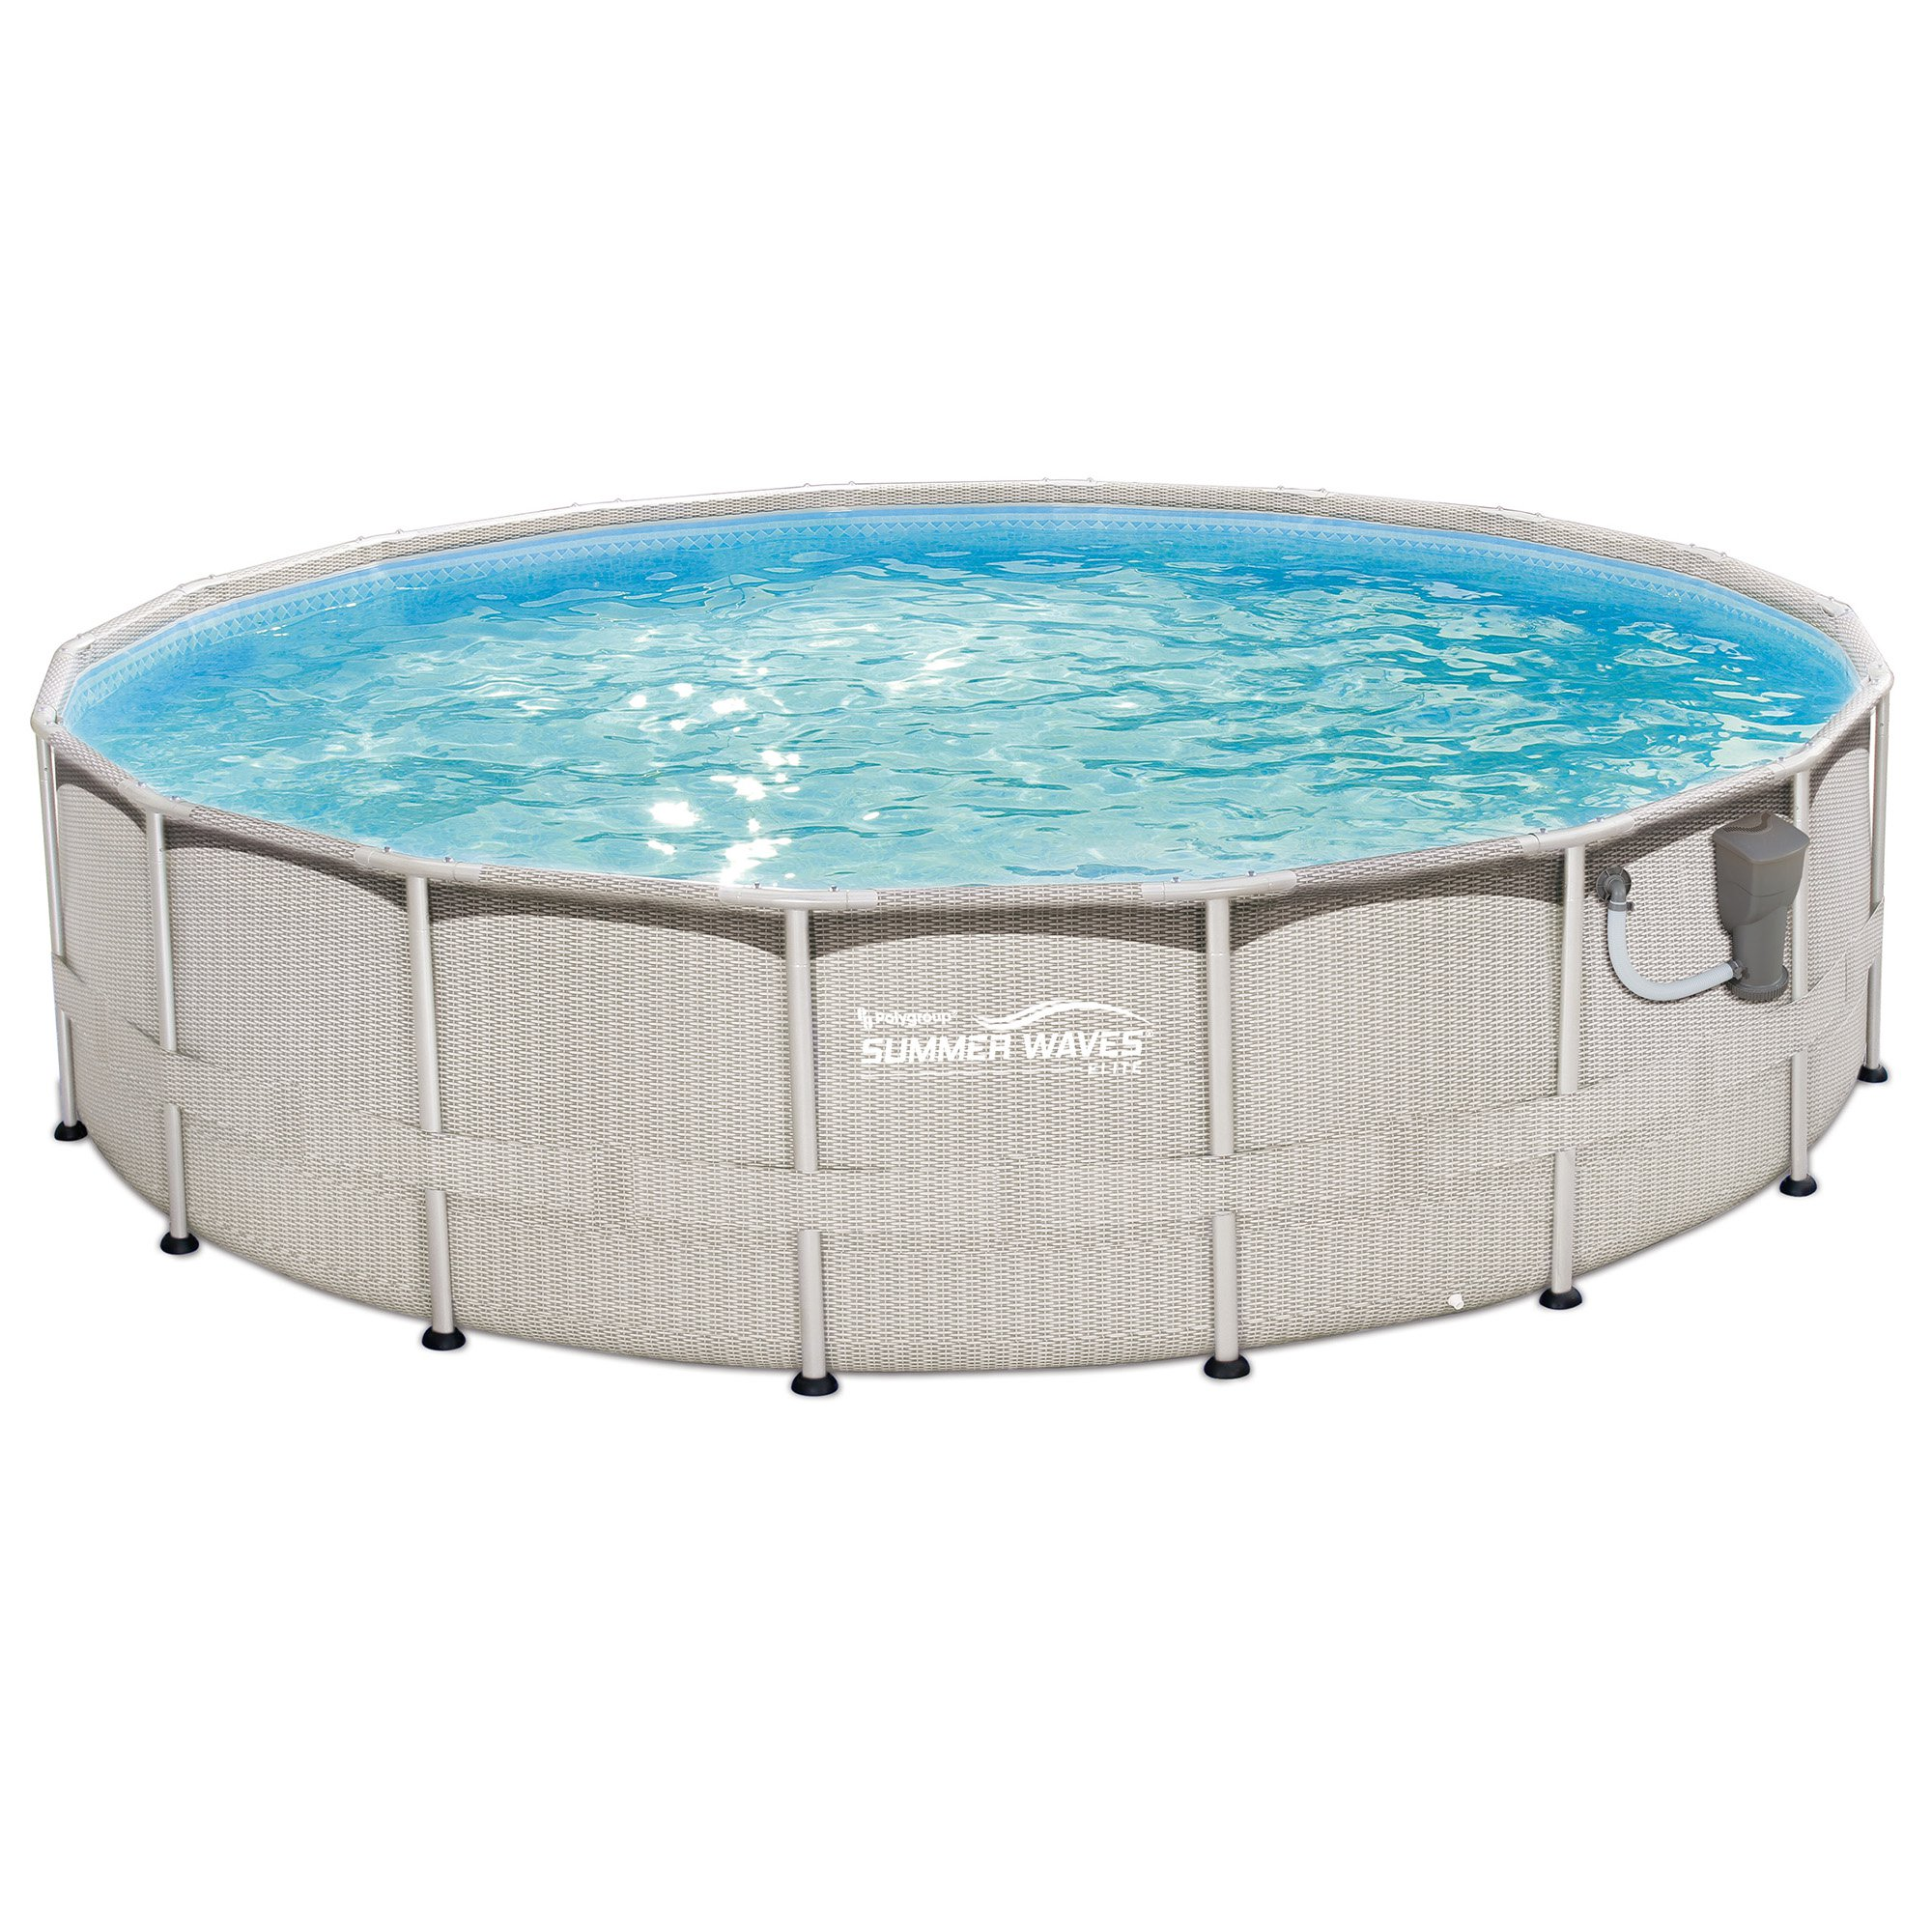 "Summer Waves 18' x 48"" Above Ground Metal Frame Swimming Pool with Ladder & Kit by Summer Waves"